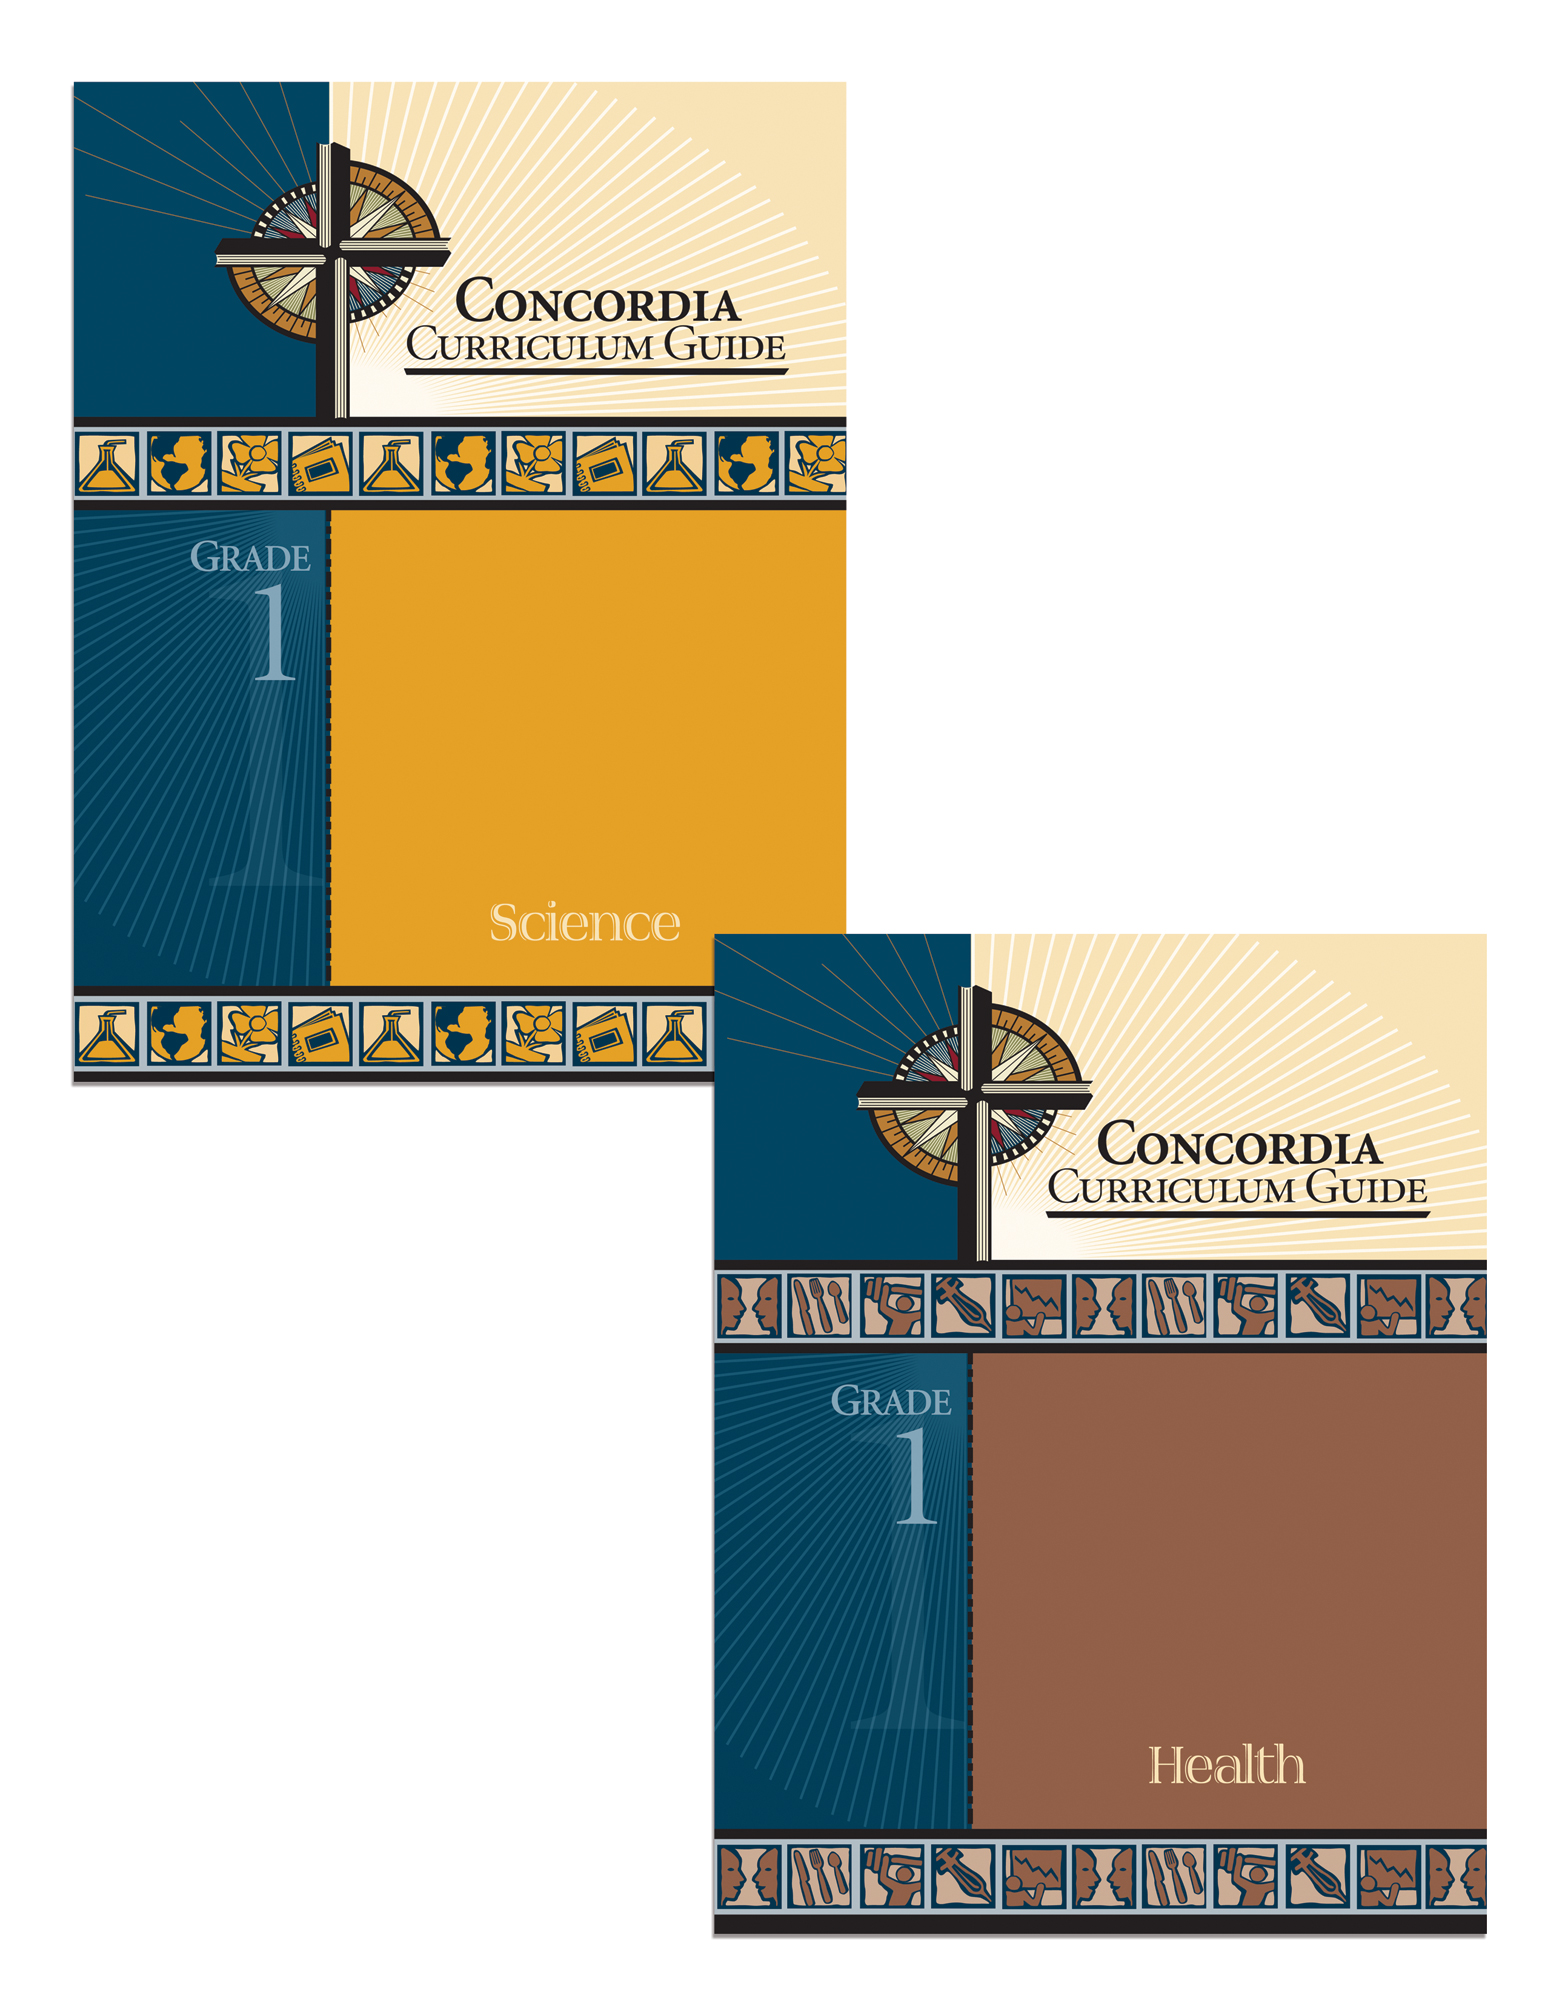 Get e-book Concordia Curriculum Guide: Grade 2 Physical